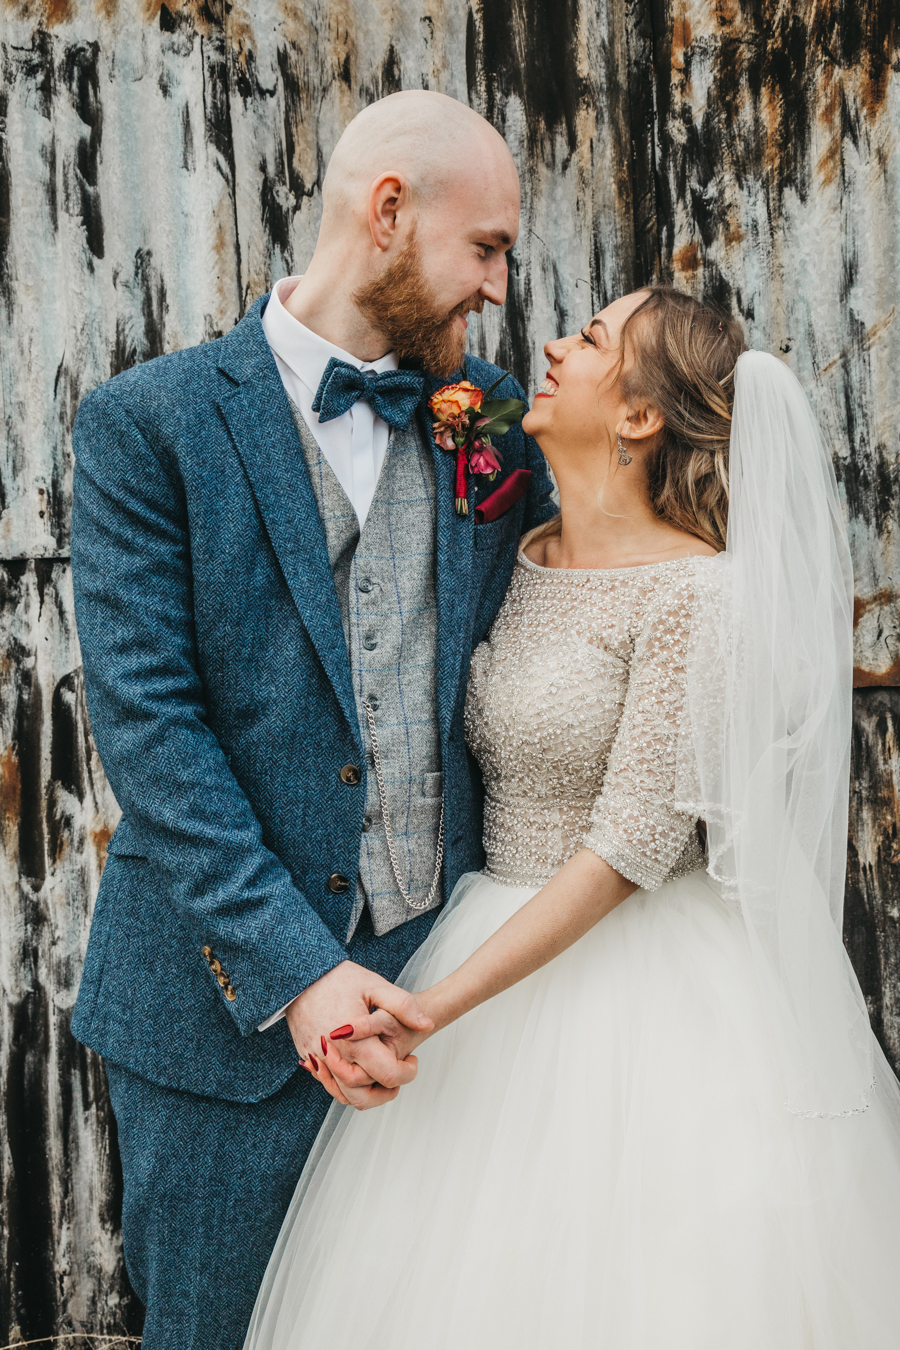 Sophie & Chris's beautiful English wedding at Curradine Barns, with Nellie Photography (36)